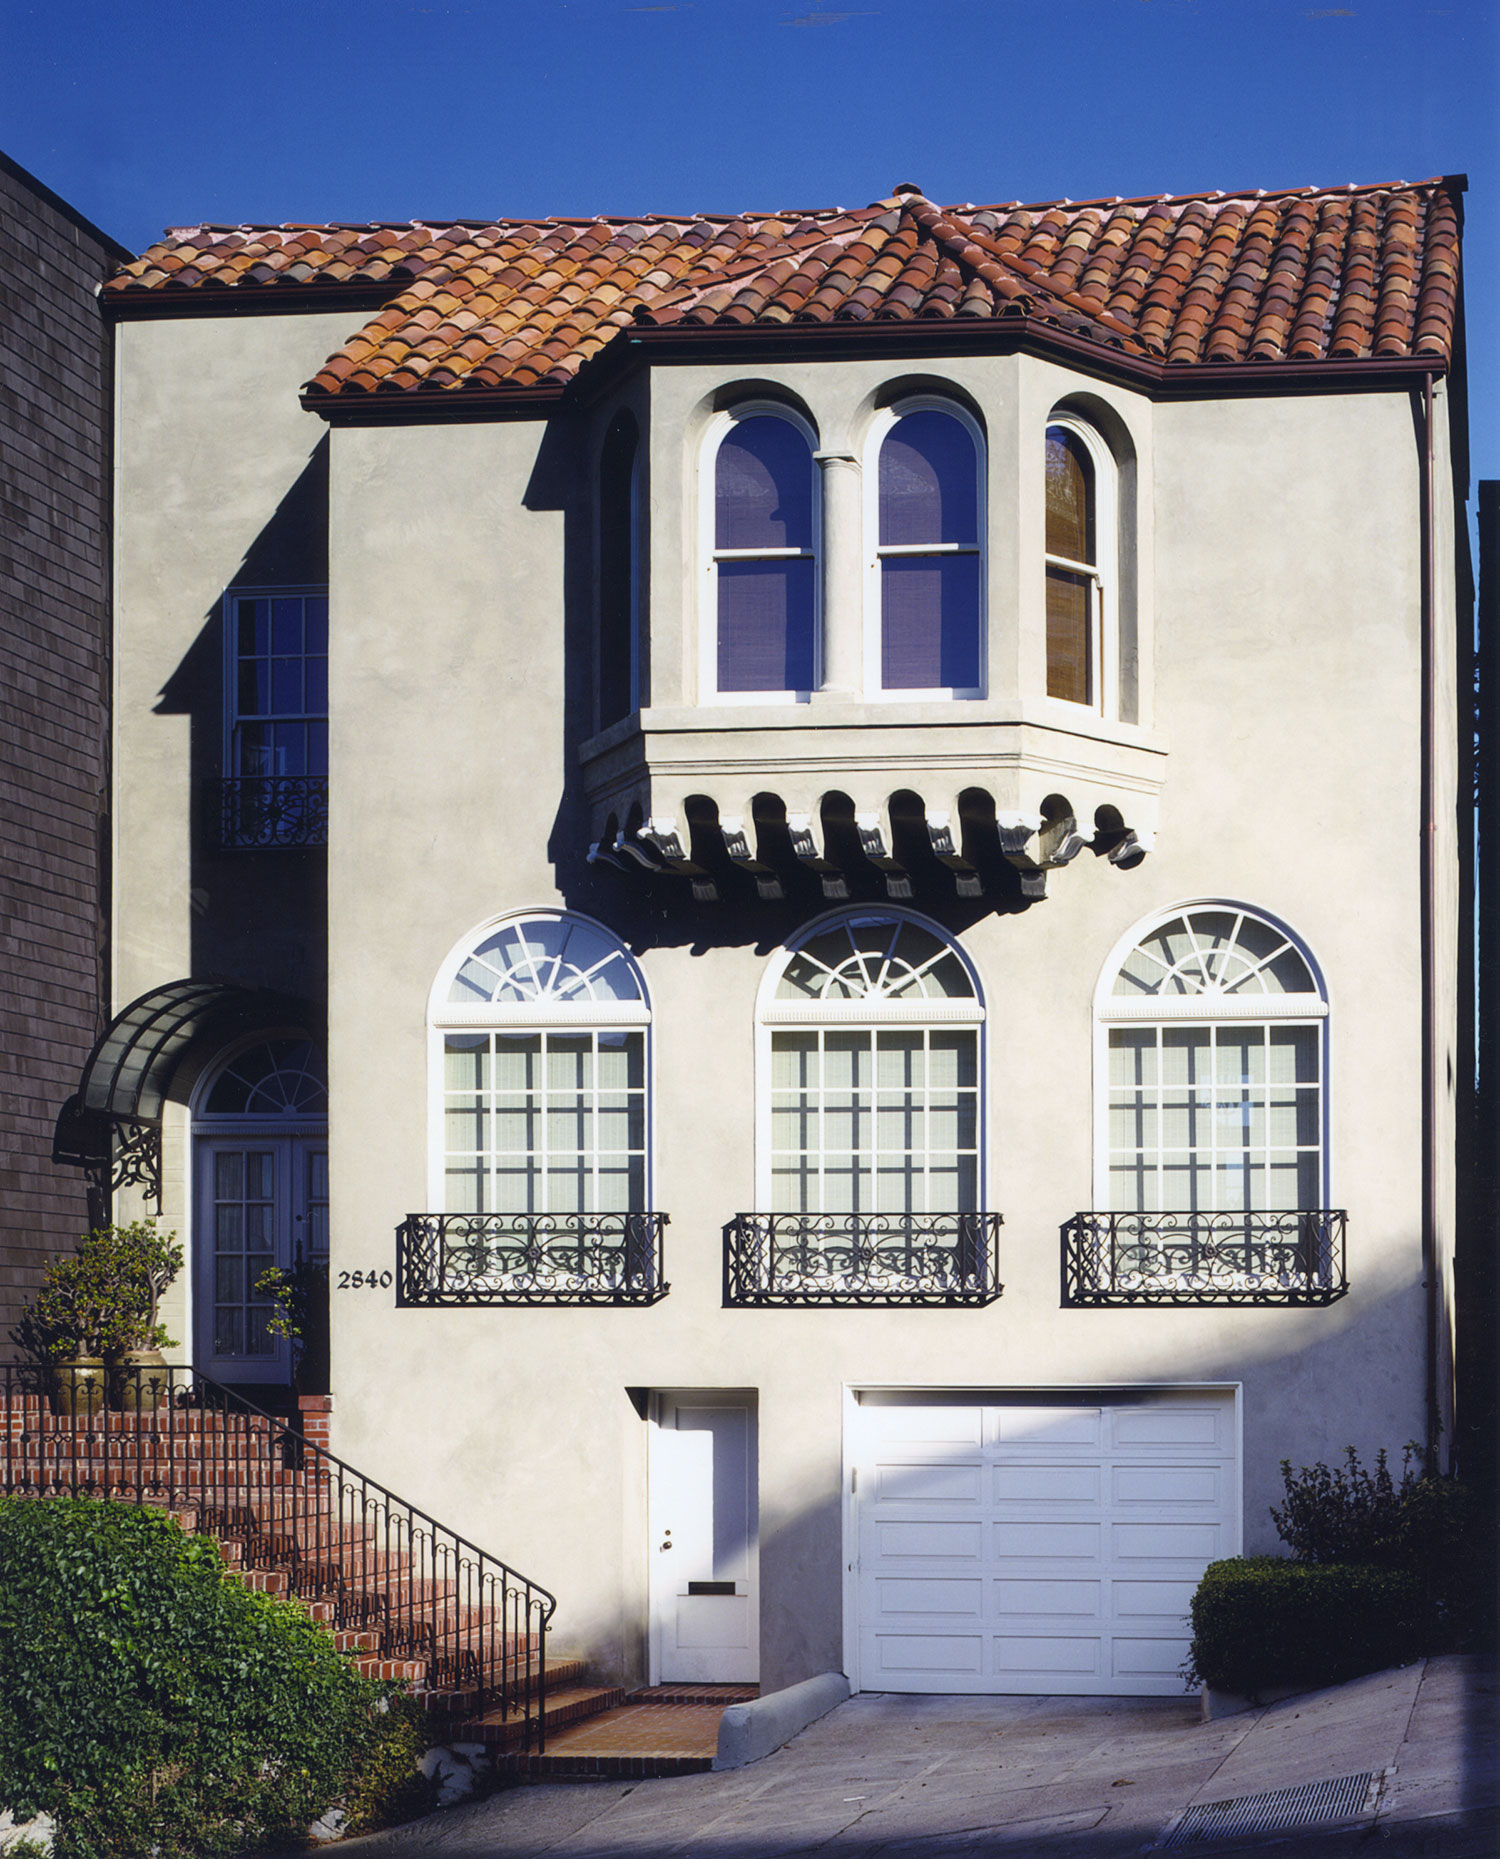 COW HOLLOW REMODEL  project started at Brayton & Hughes  and completed by Gemmill Design    Location: San Francisco, California  Project Type: Residential Remodel  Year of Completion: 2001